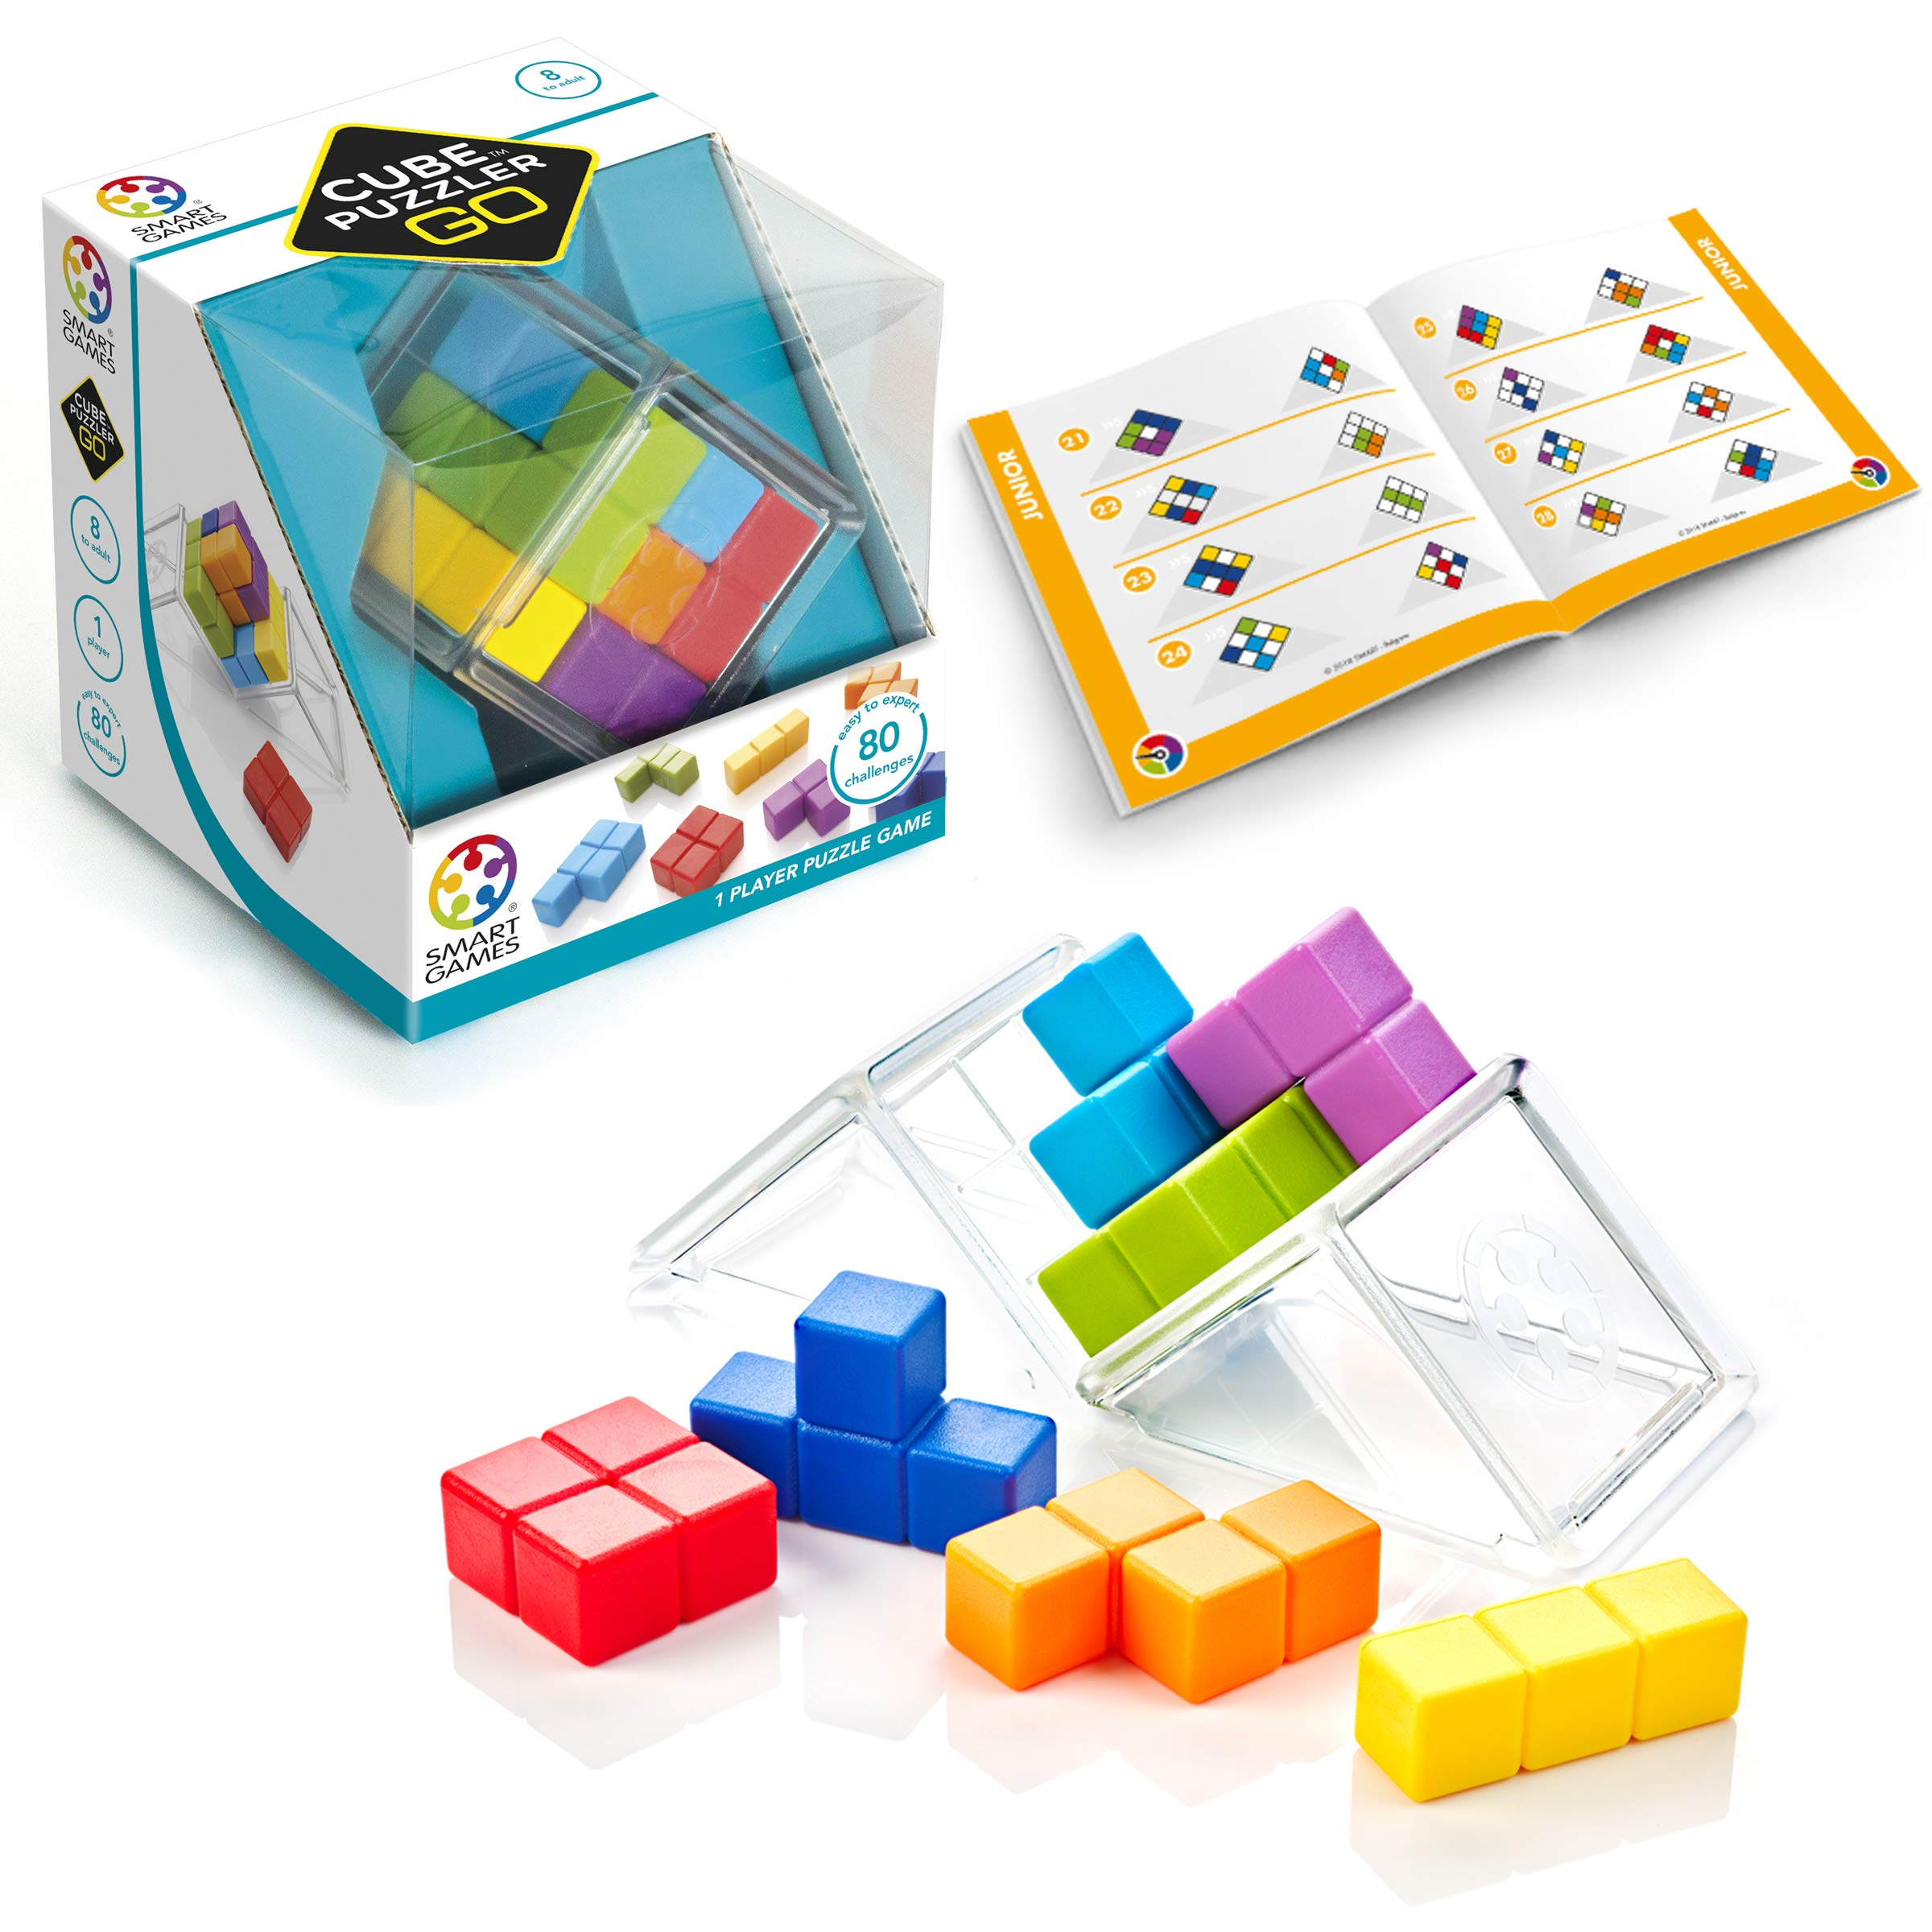 SmartGames Cube Puzzler GO - 3D STEM Game - Brain Teaser for Ages 8 & Up, 80 Challenges in Portable Display Case. by SmartGames